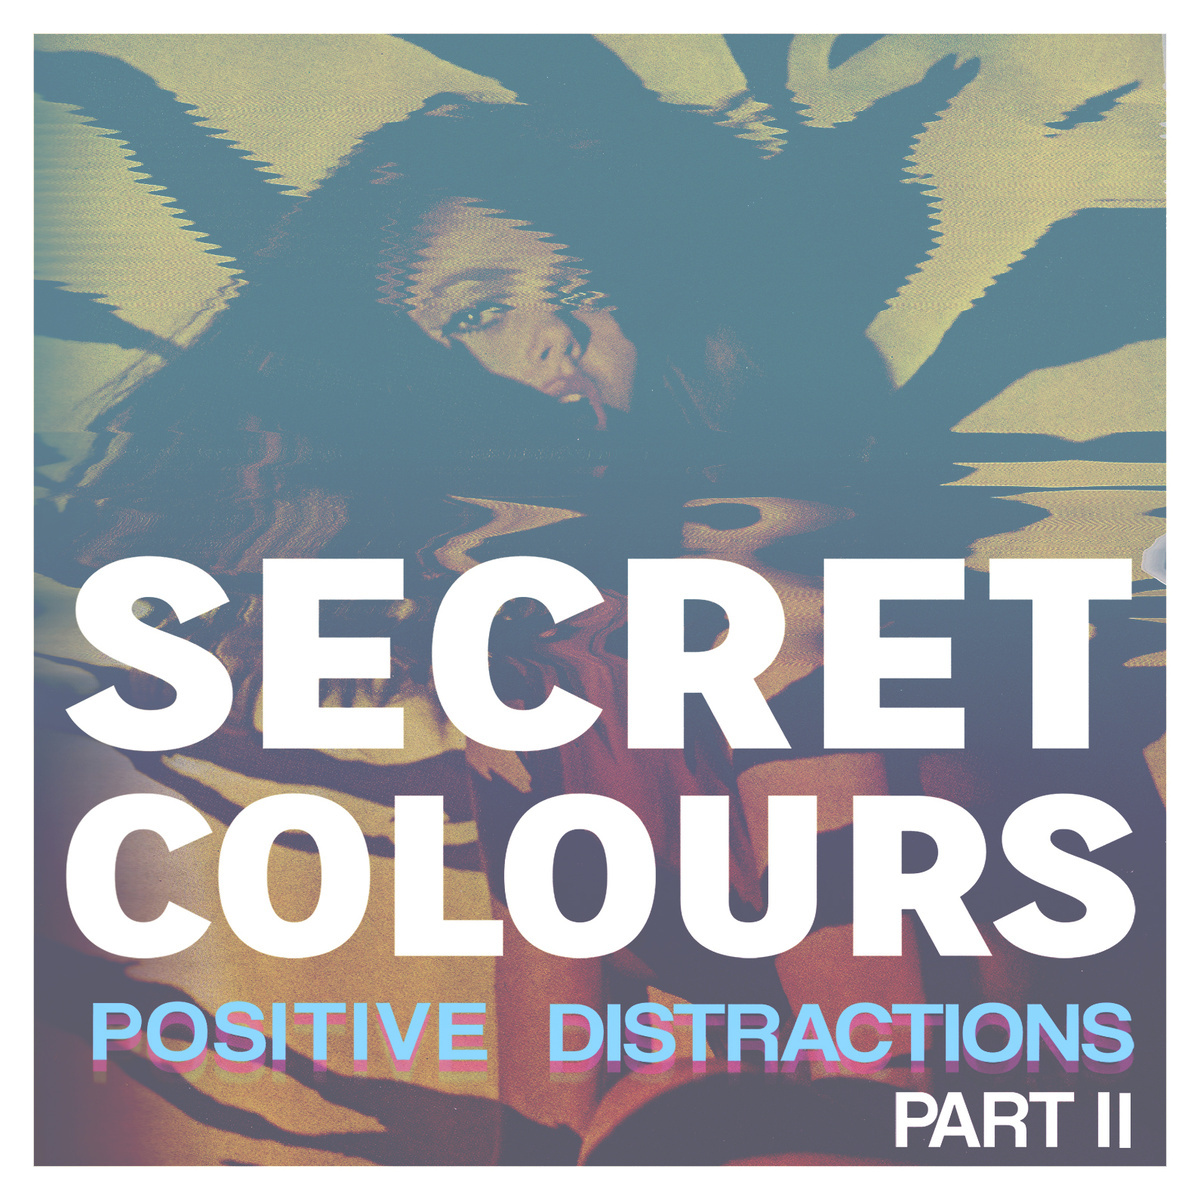 Secret Colours publicity photo.